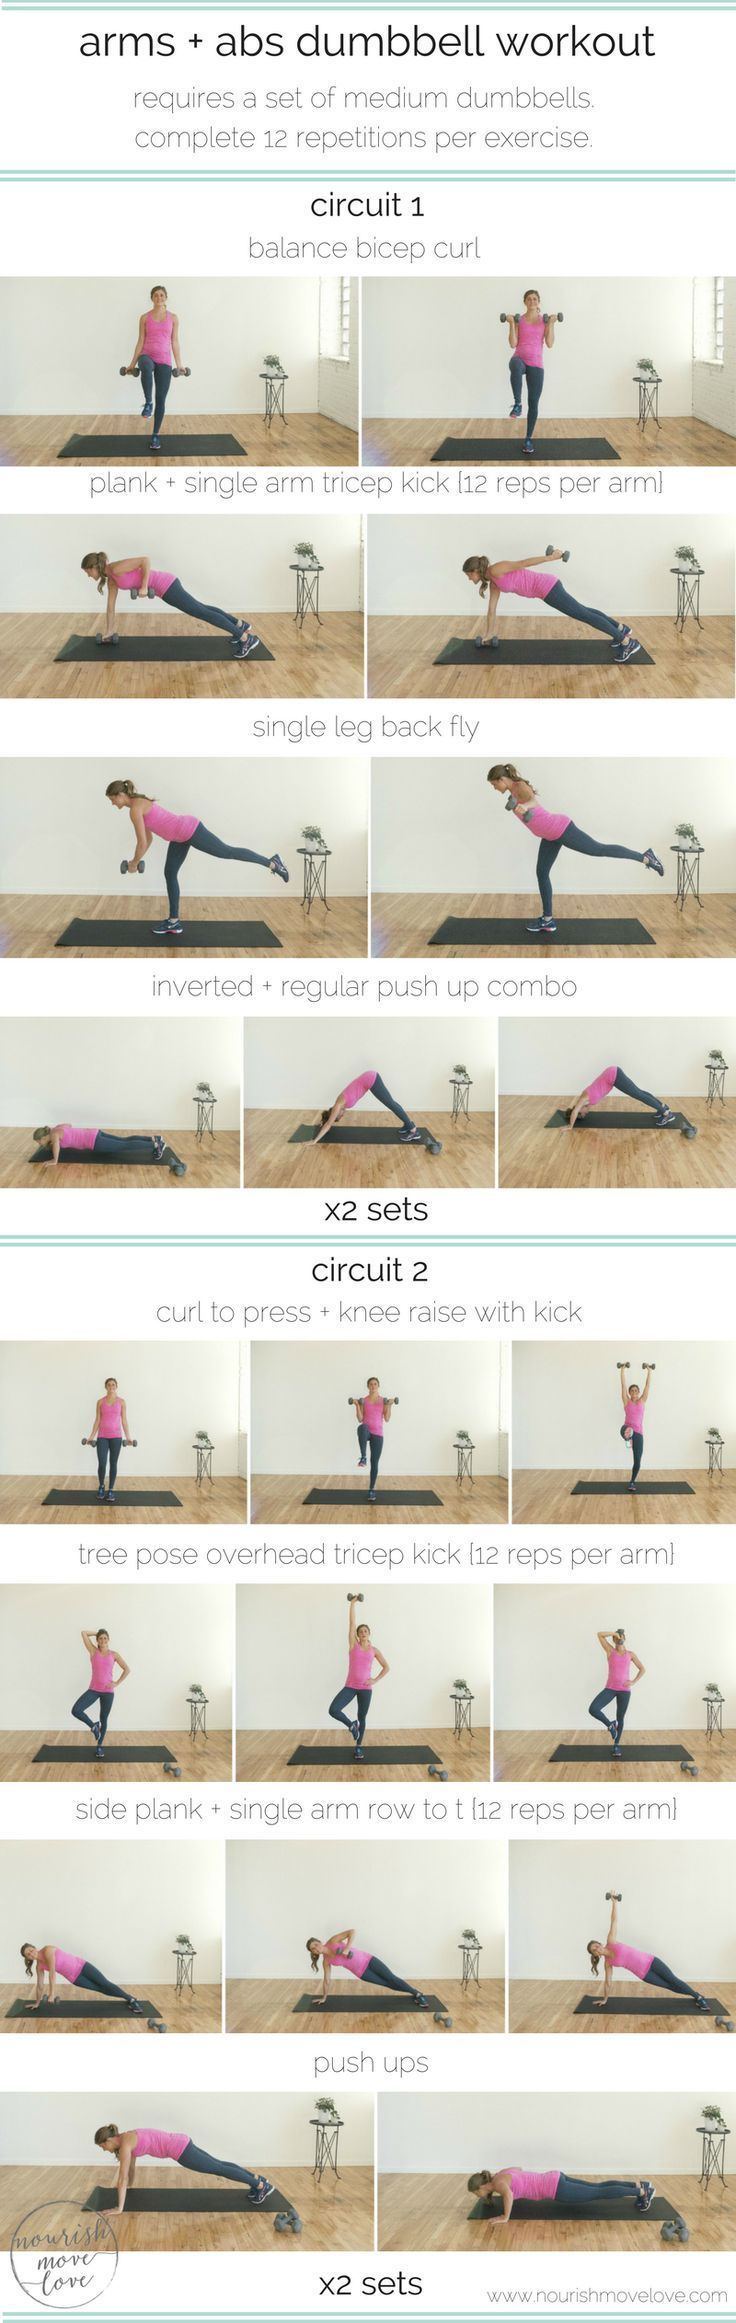 199 Best Get Healthy Images By My Grins Their Logic On Pinterest Full Body Dumbell Circuit Workout Pictures Photos And For Arms Abs Dumbbell Burnout 8 Exercises To Tone Up Workoutschest Workoutscircuit